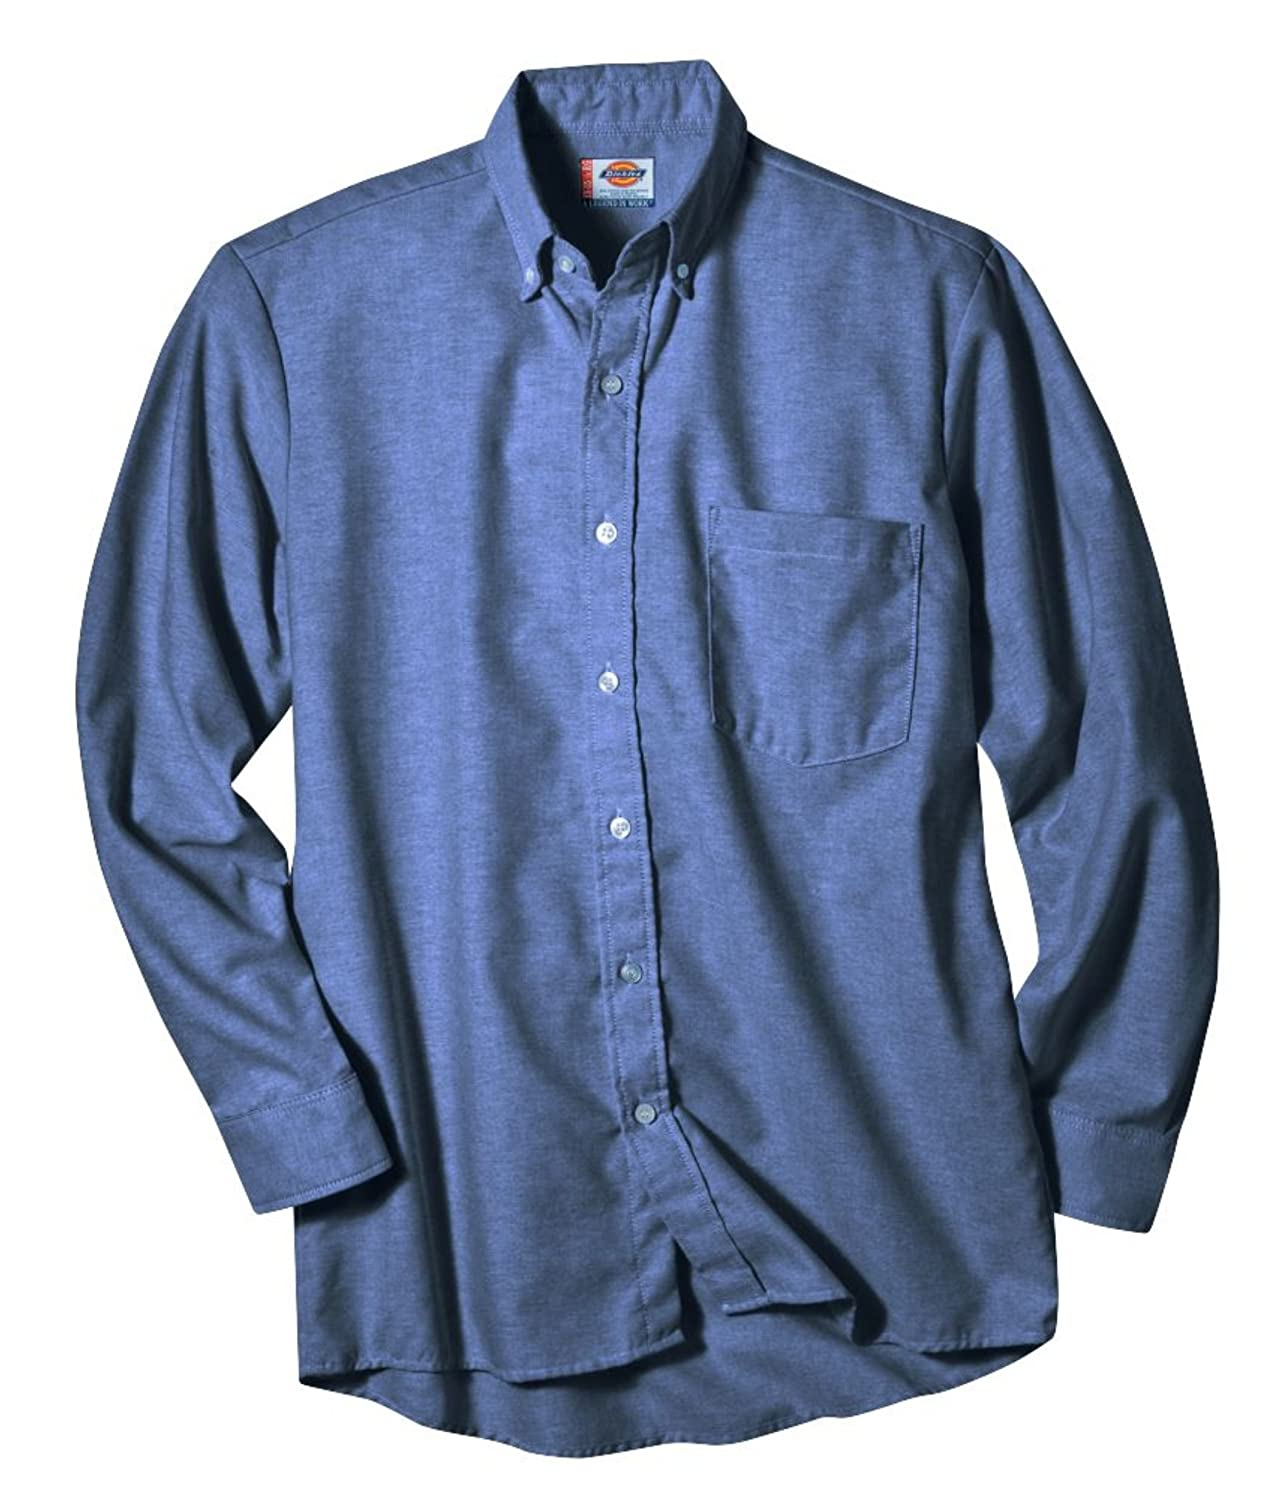 Dickies Occupational Workwear SS36BS Polyester//Cotton Mens Button-Down Long Sleeve Oxford Shirt Blue with White Stripe